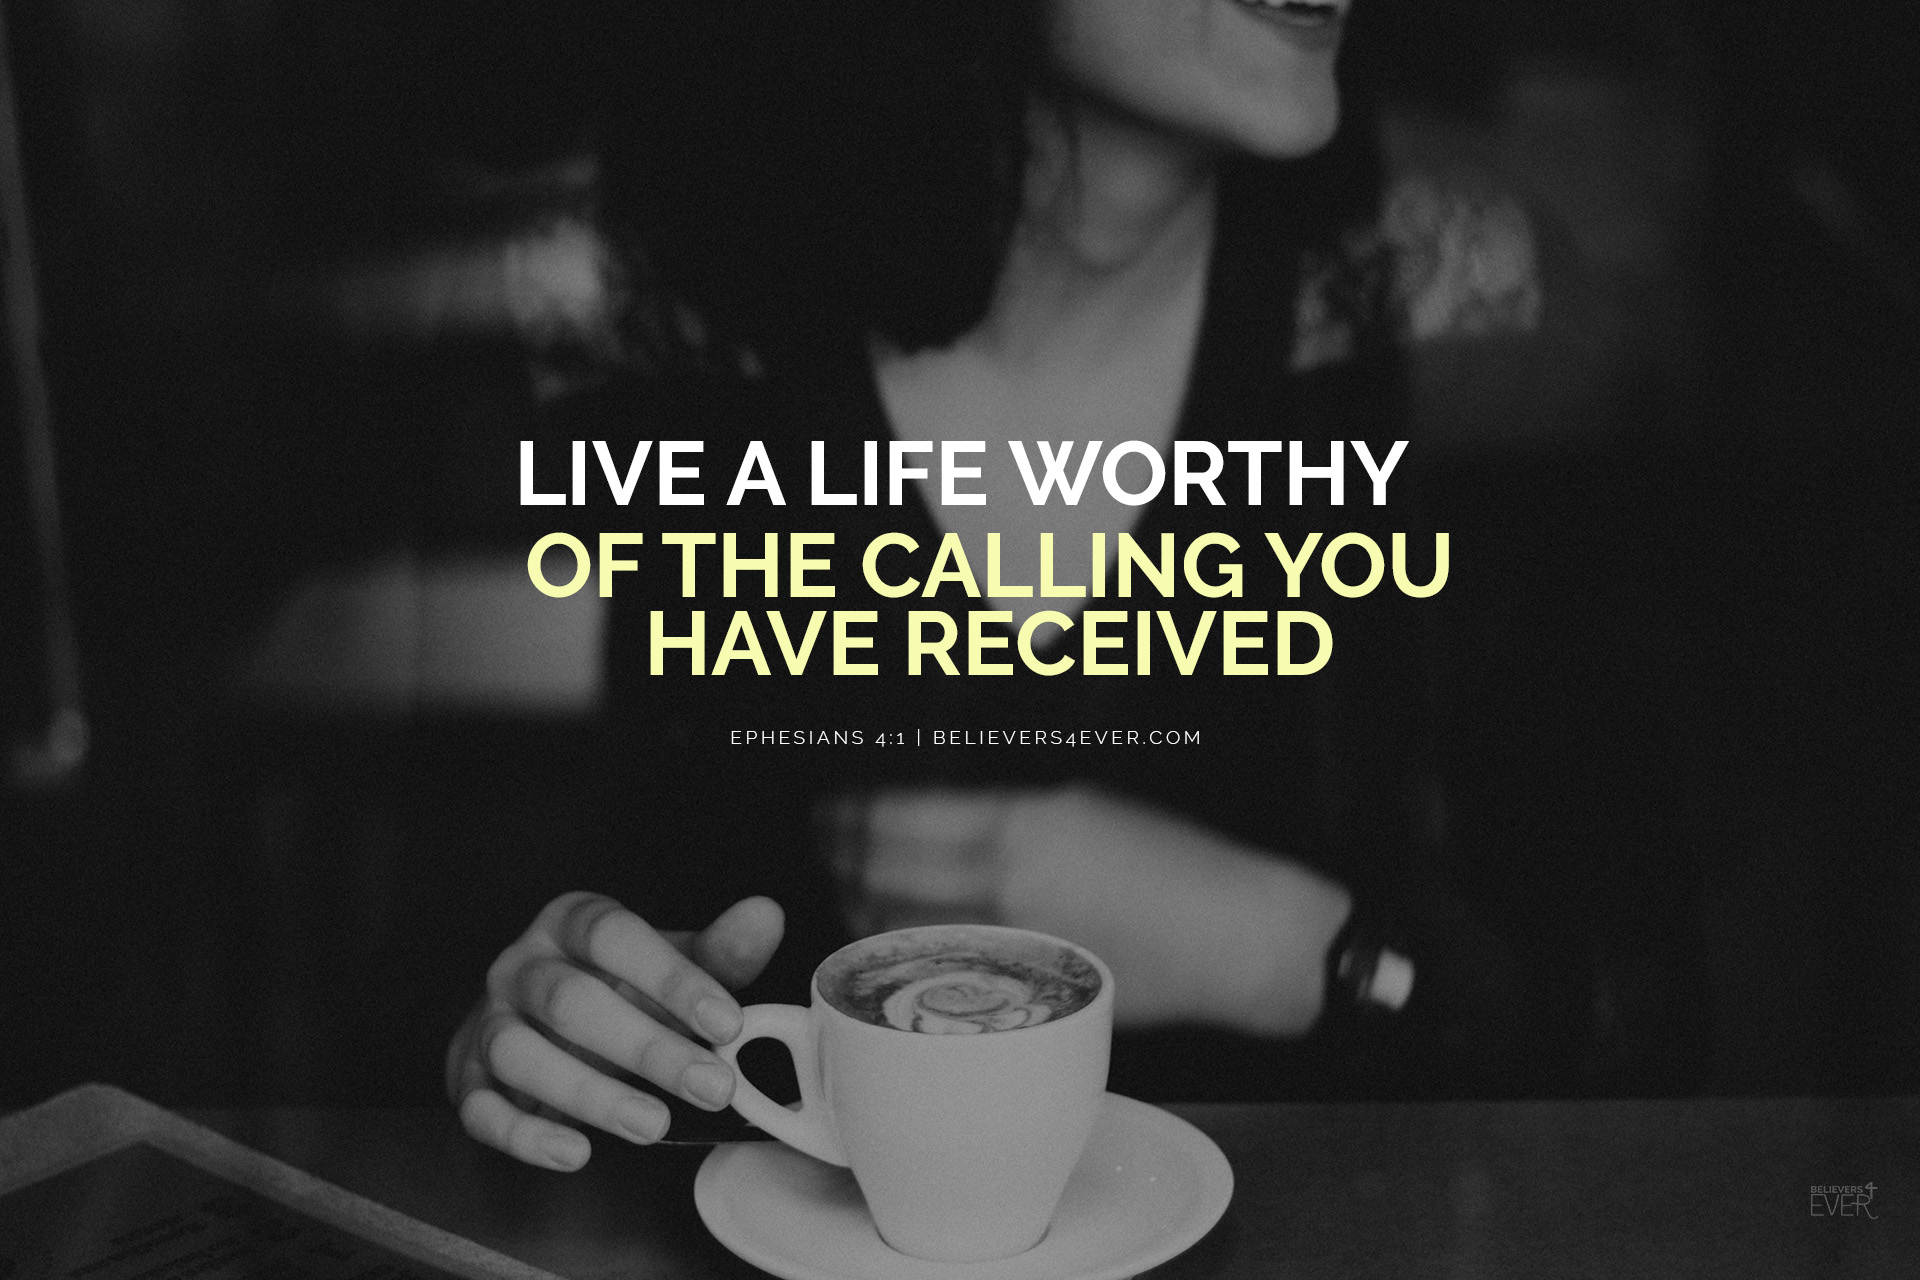 Life A Life Worthy Ephesians - Live A Life Worthy Of Your Calling - HD Wallpaper